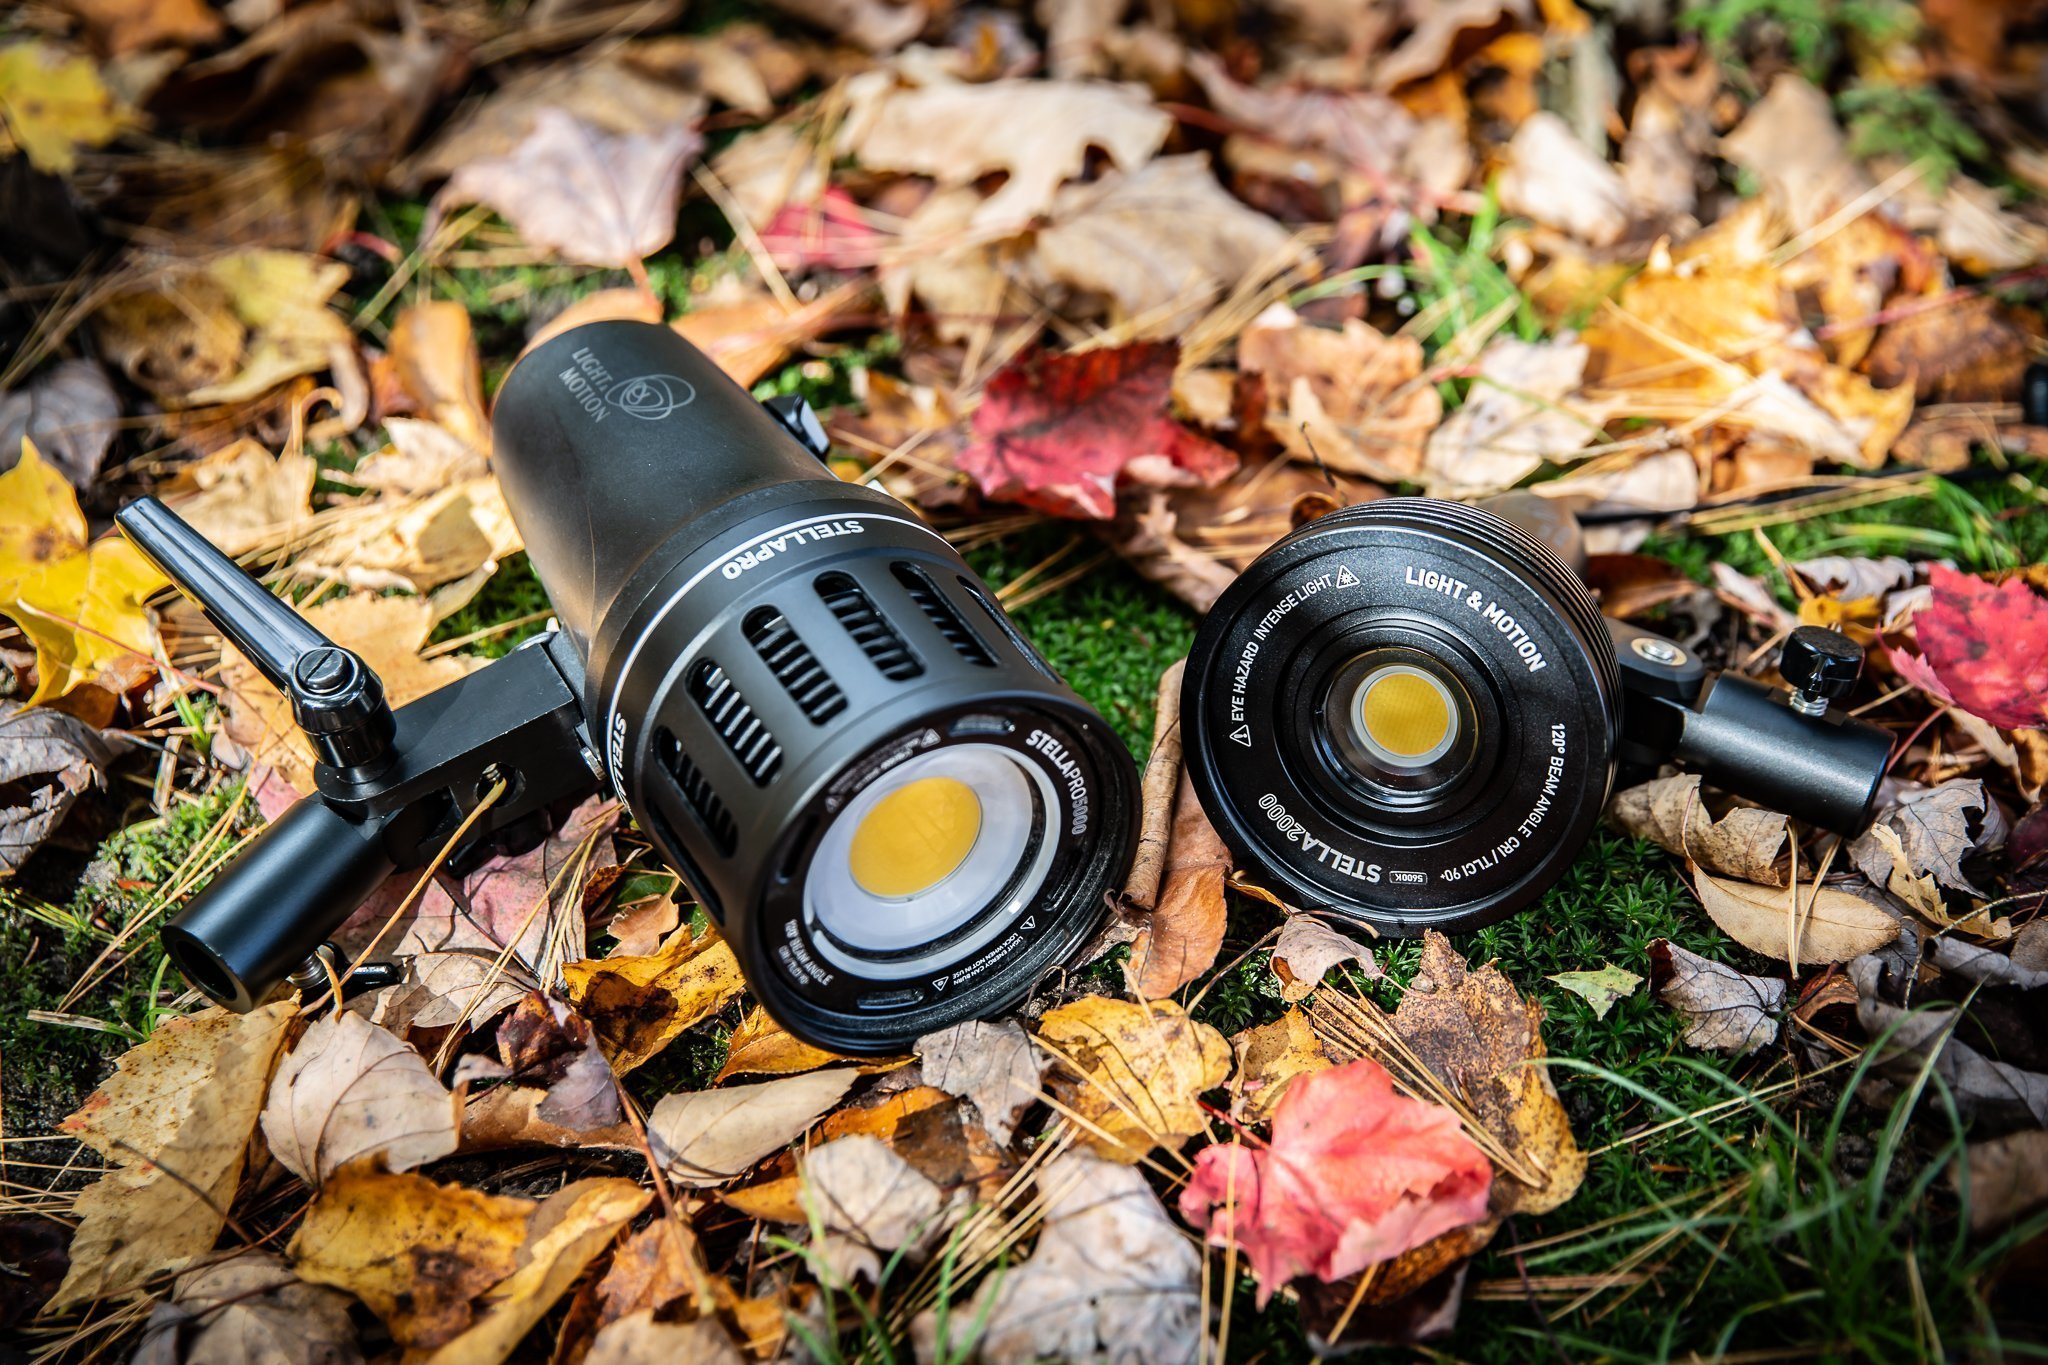 Alana Lee Photography: Stella Pro 5000 and Stella Pro 2000 continuous LED lights for photographers outdoors